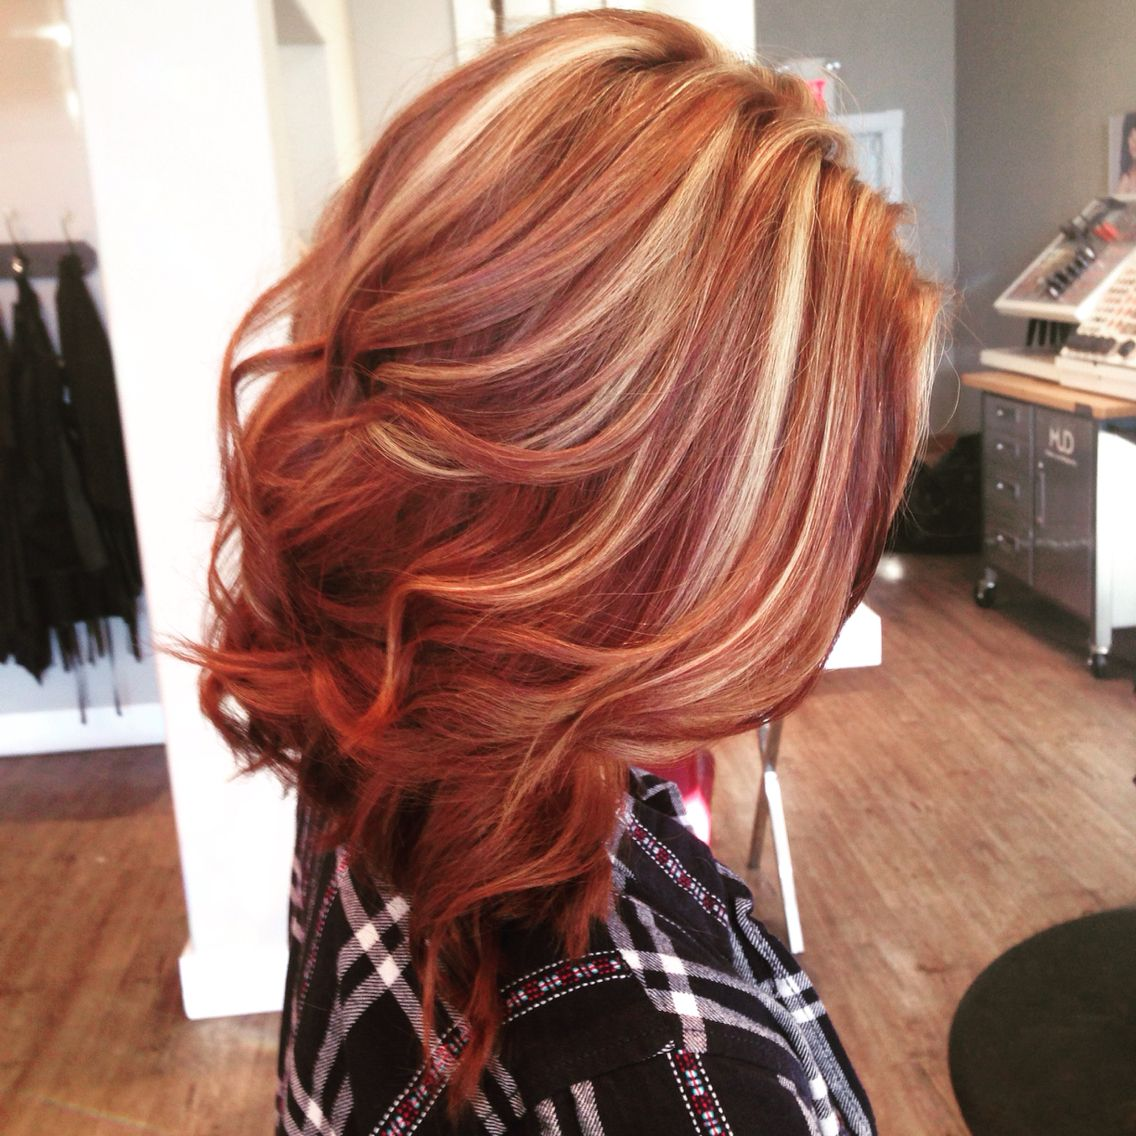 Beautiful Copper Lob With Blonde Highlights Hair By Teasedandtoned